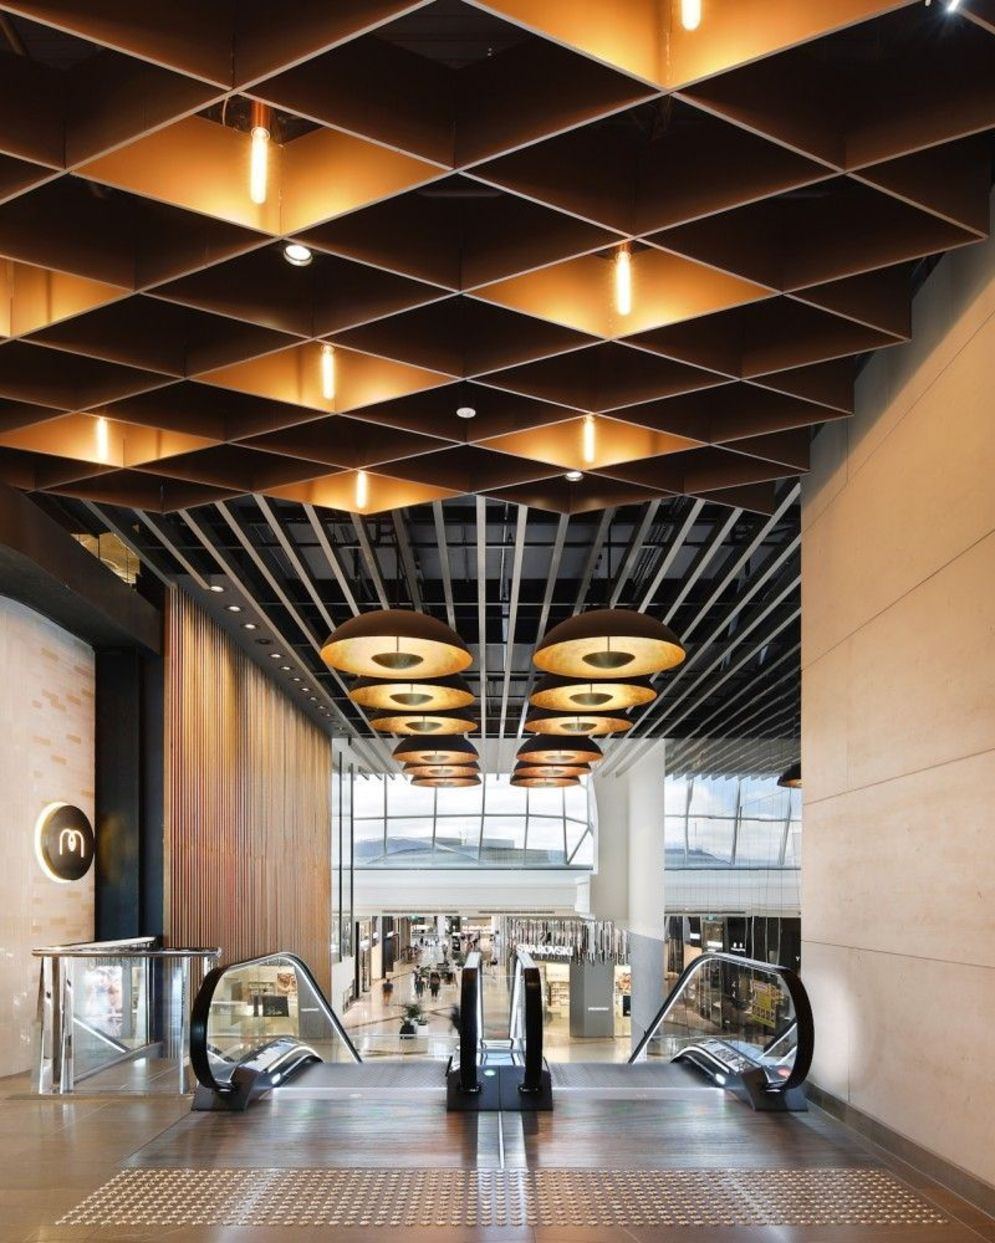 Amazing office interior ideas with unique and unconventional false ceiling designs Image 5